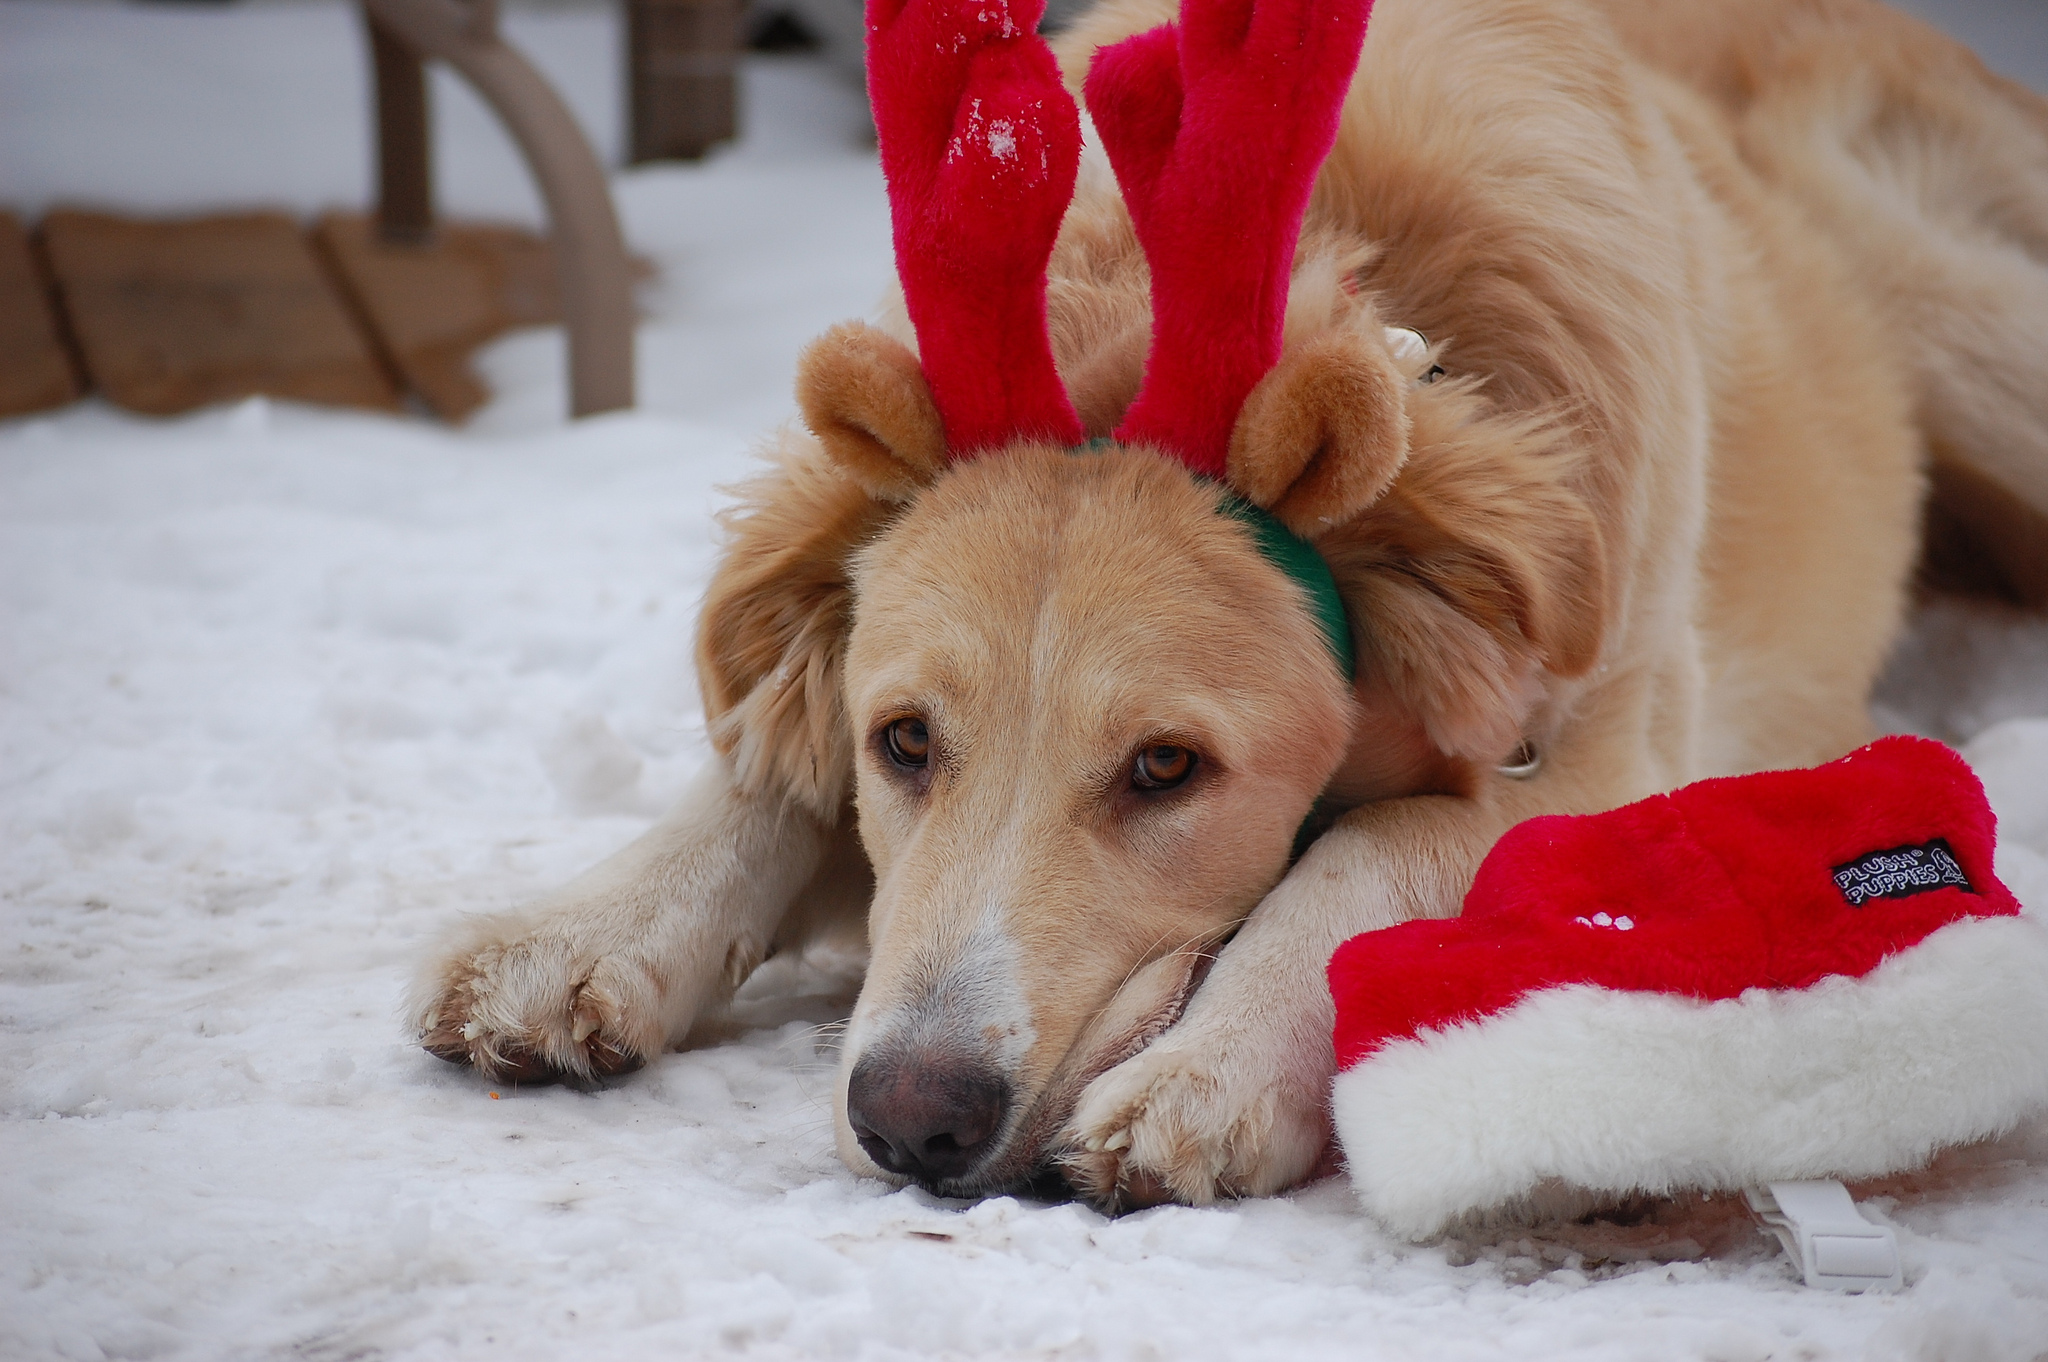 8 Adorable Gifts For Dogs The Cuteness Is Off The Charts